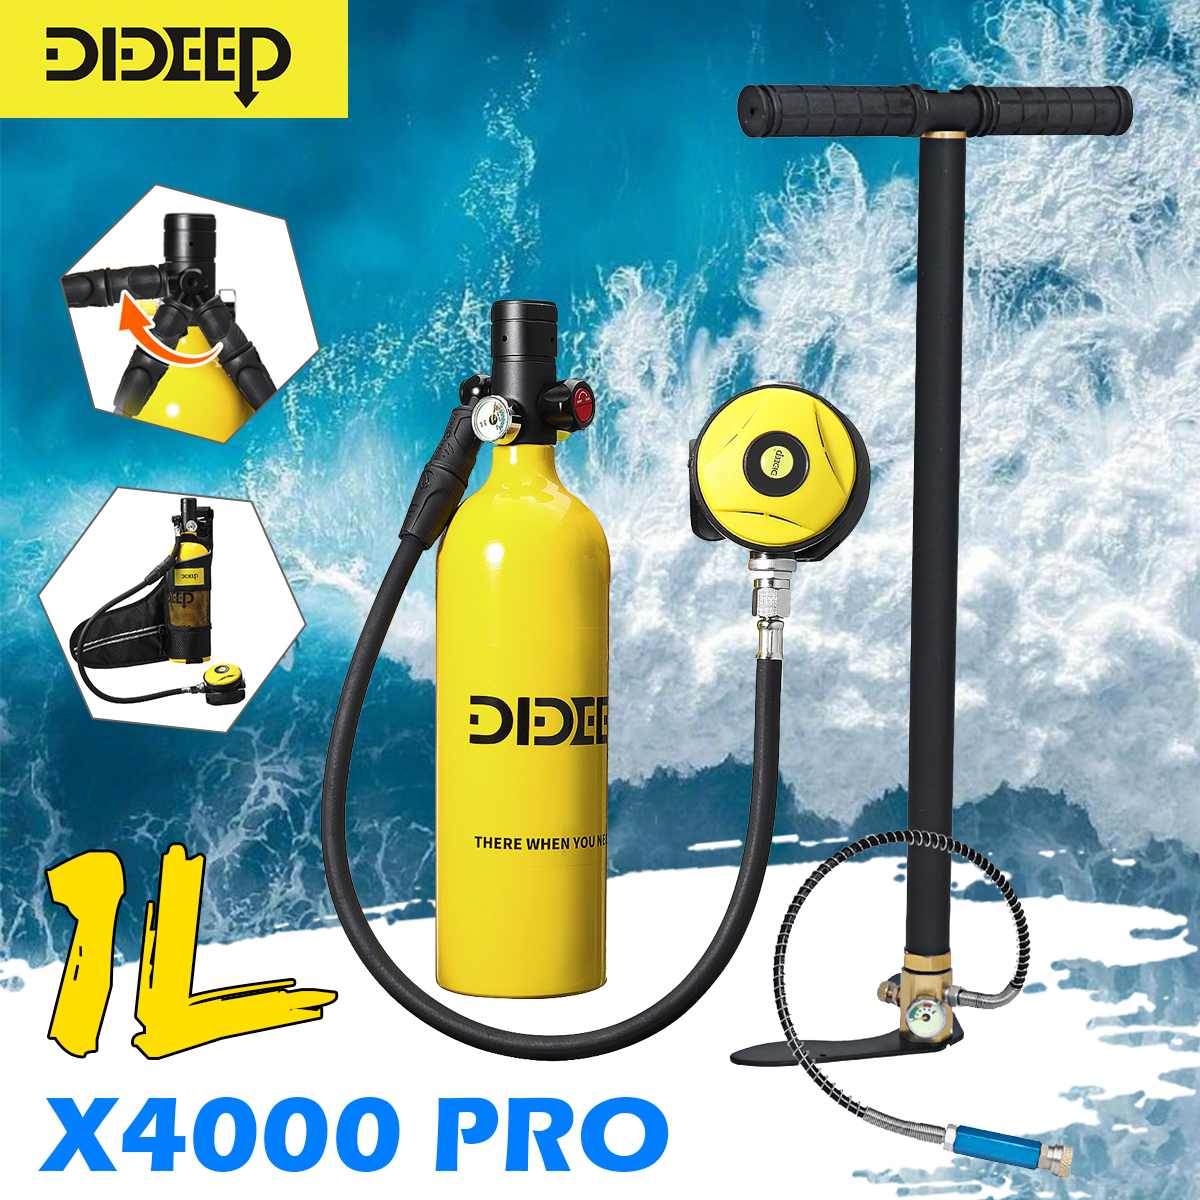 DIDEEP 1L Scuba Diving Cylinder Mini Oxygen Tank Set Dive Respirator Air Tank Hand Pump for Snorkeling Breath Diving Equipment